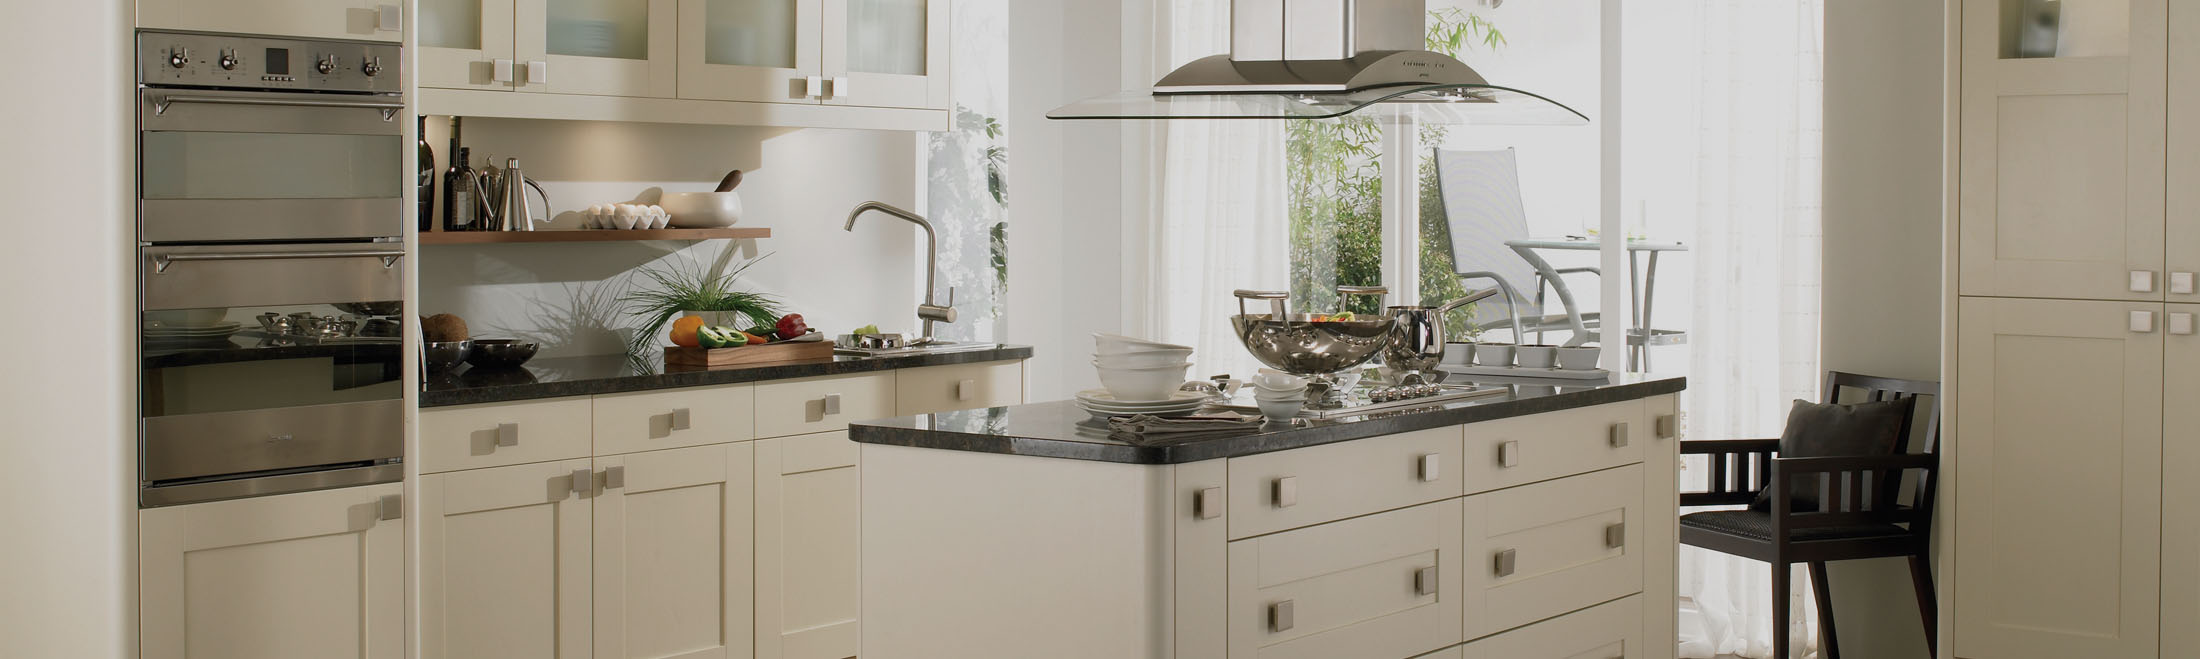 Contract kitchen suppliers west yorkshire